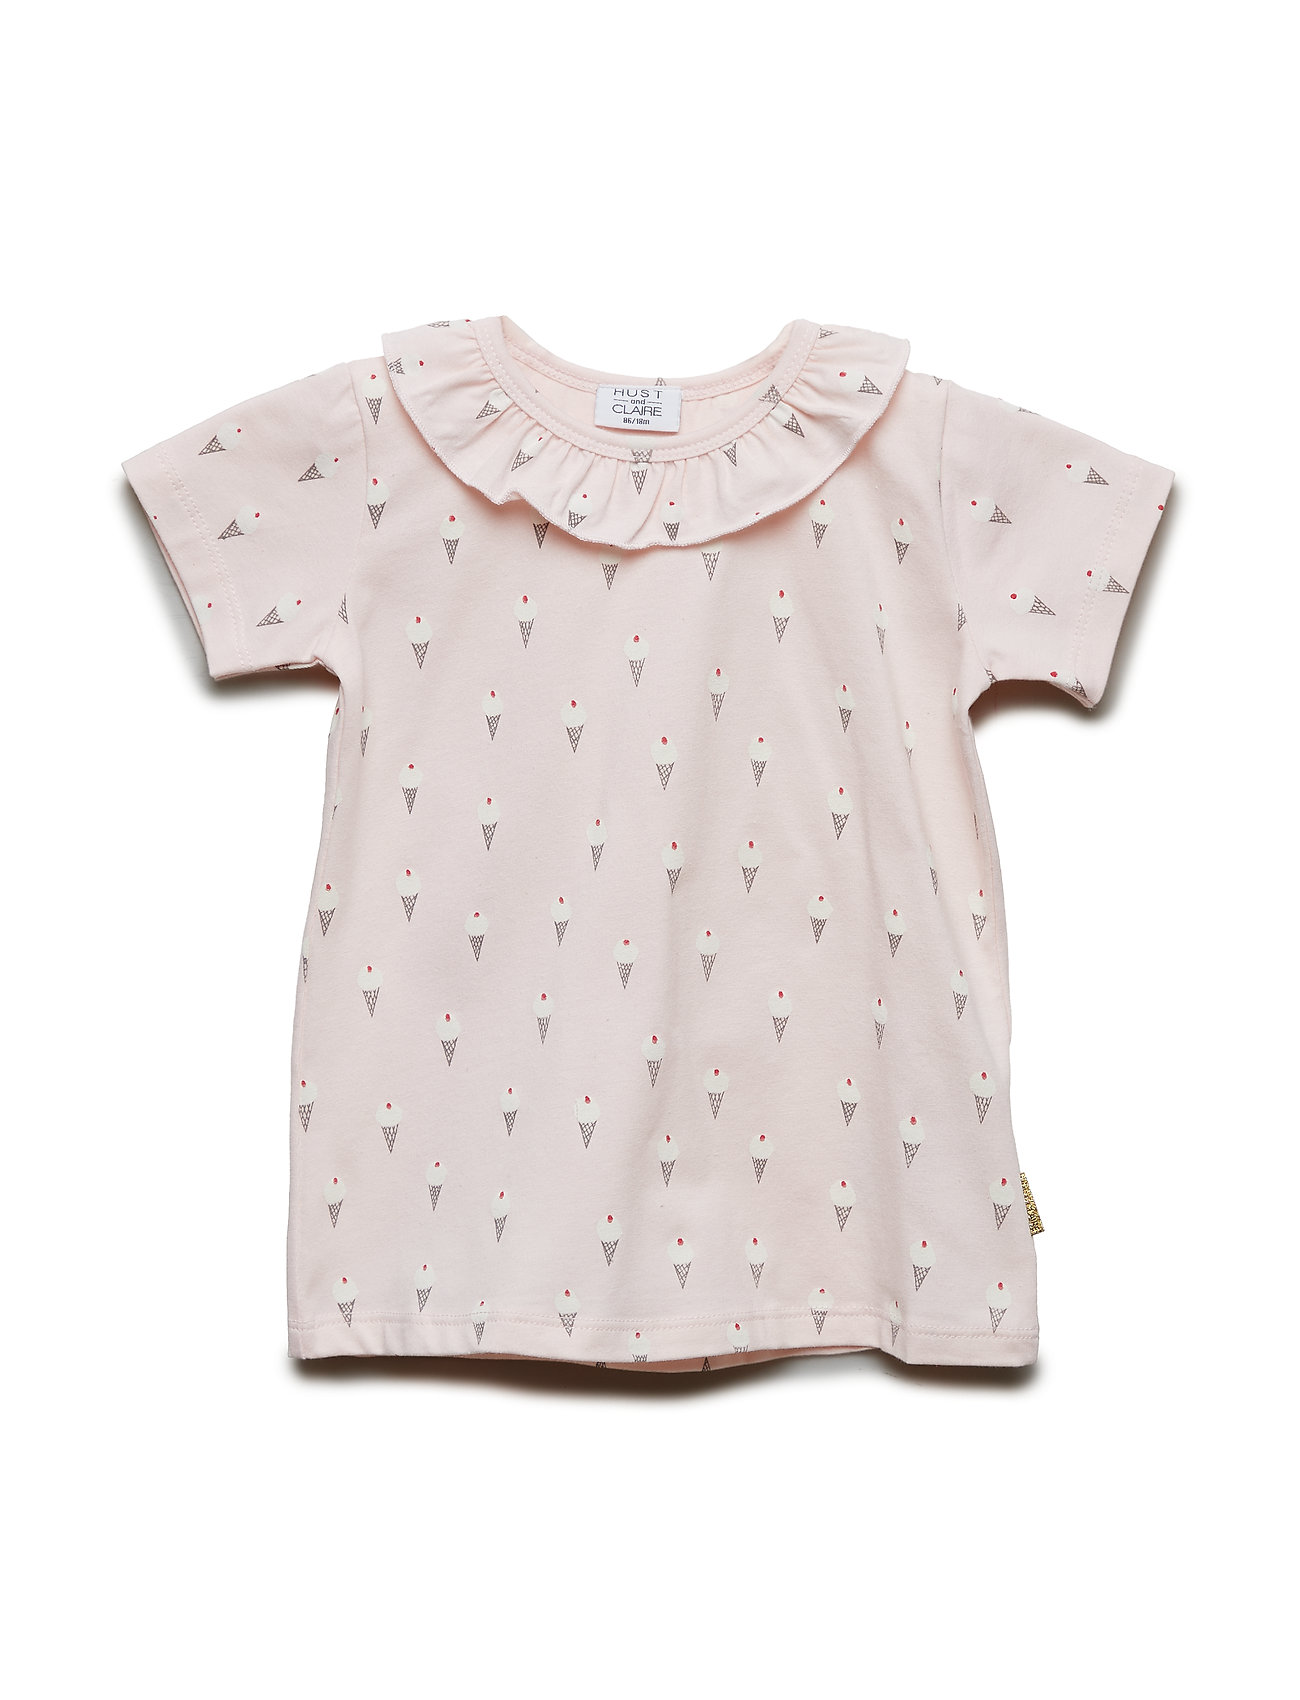 Hust & Claire Audrey - T-shirt S/S - NUDE PINK